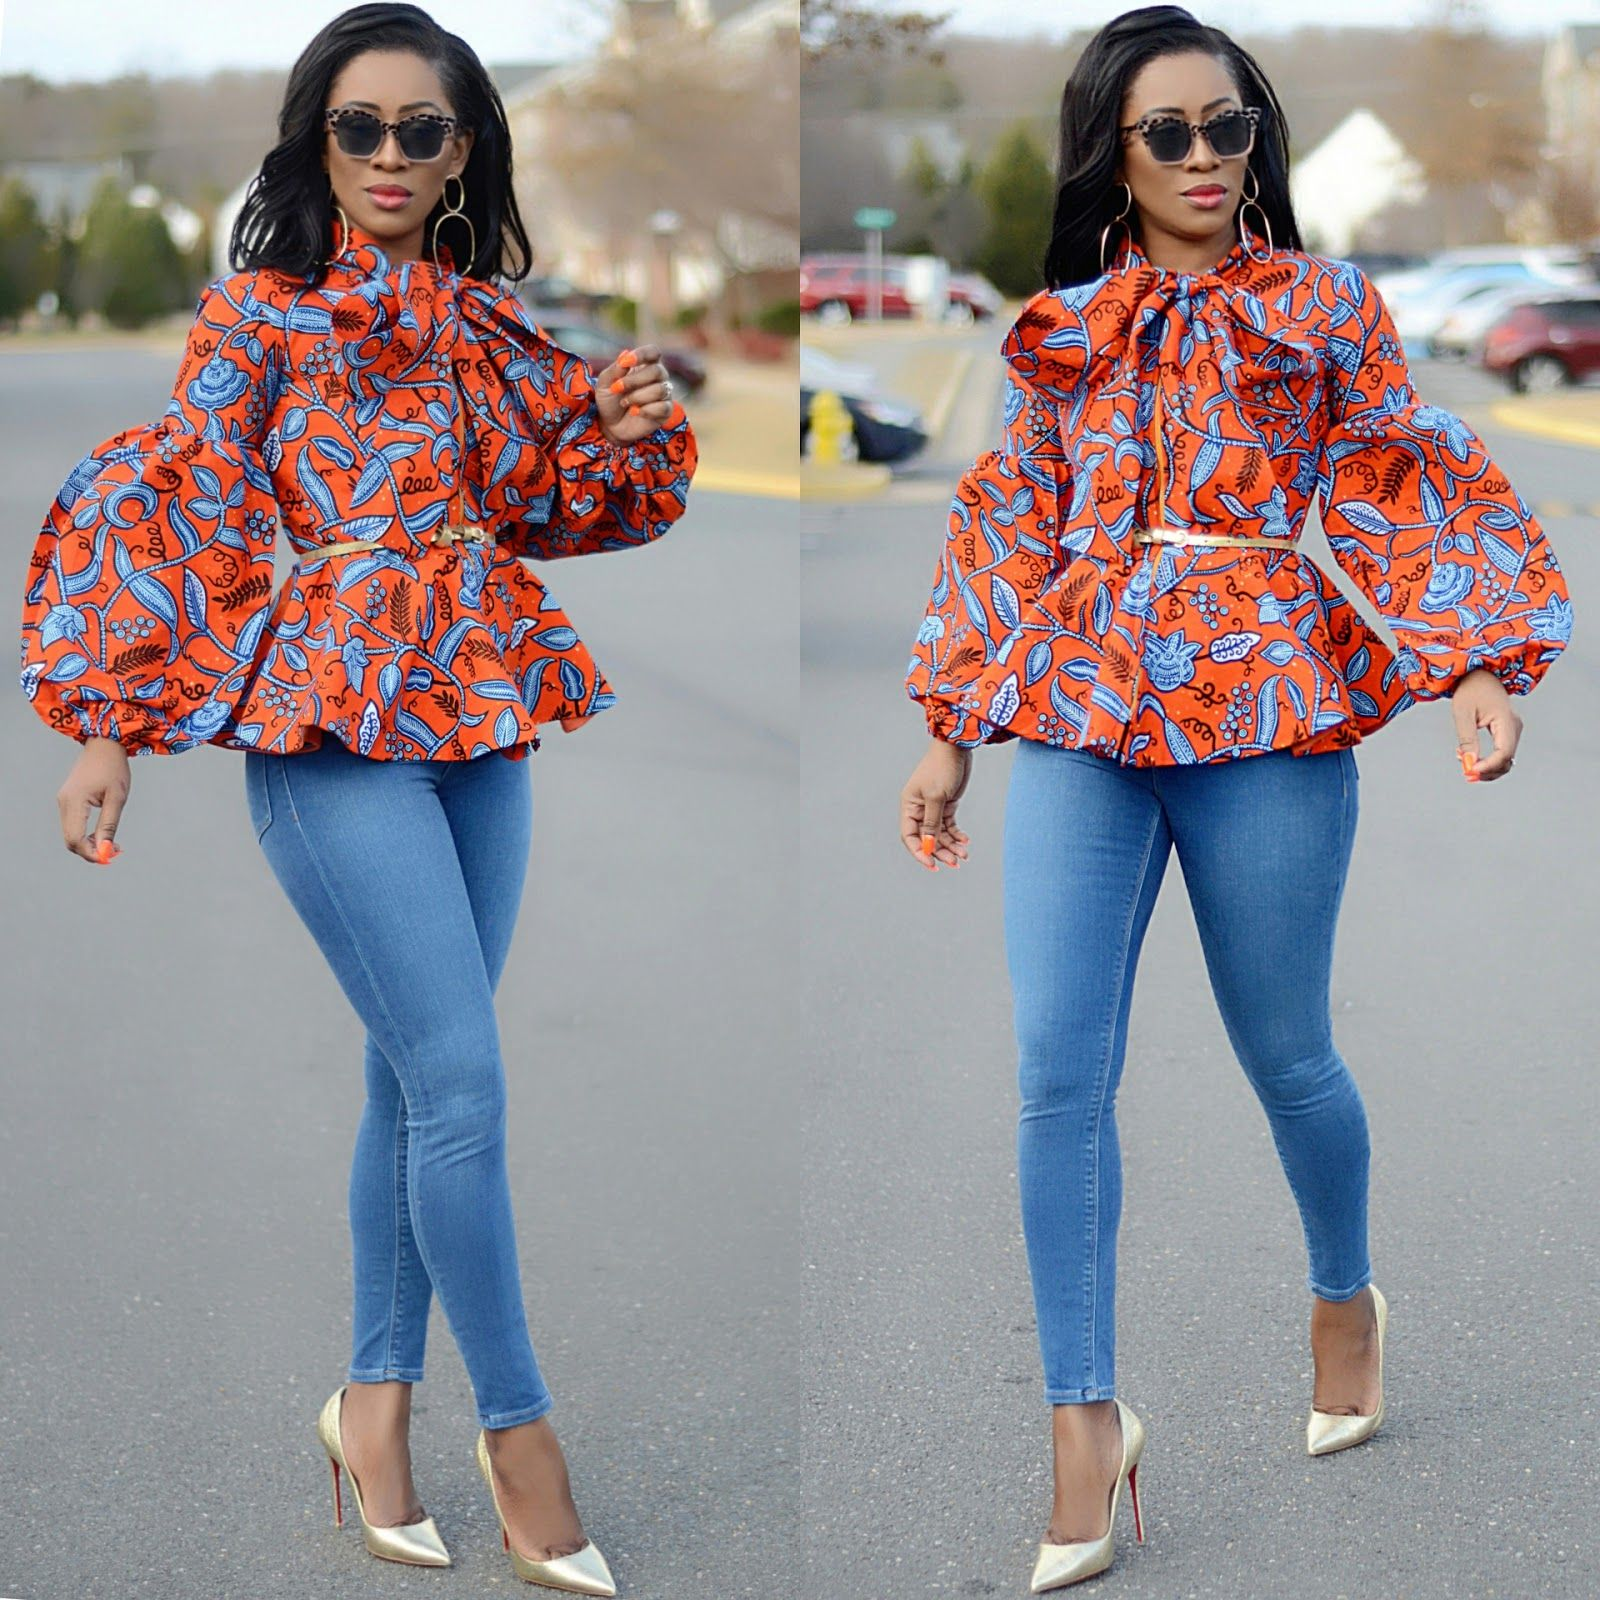 How To Order Email: Livingmyblissinstyle@gmail.com Payment